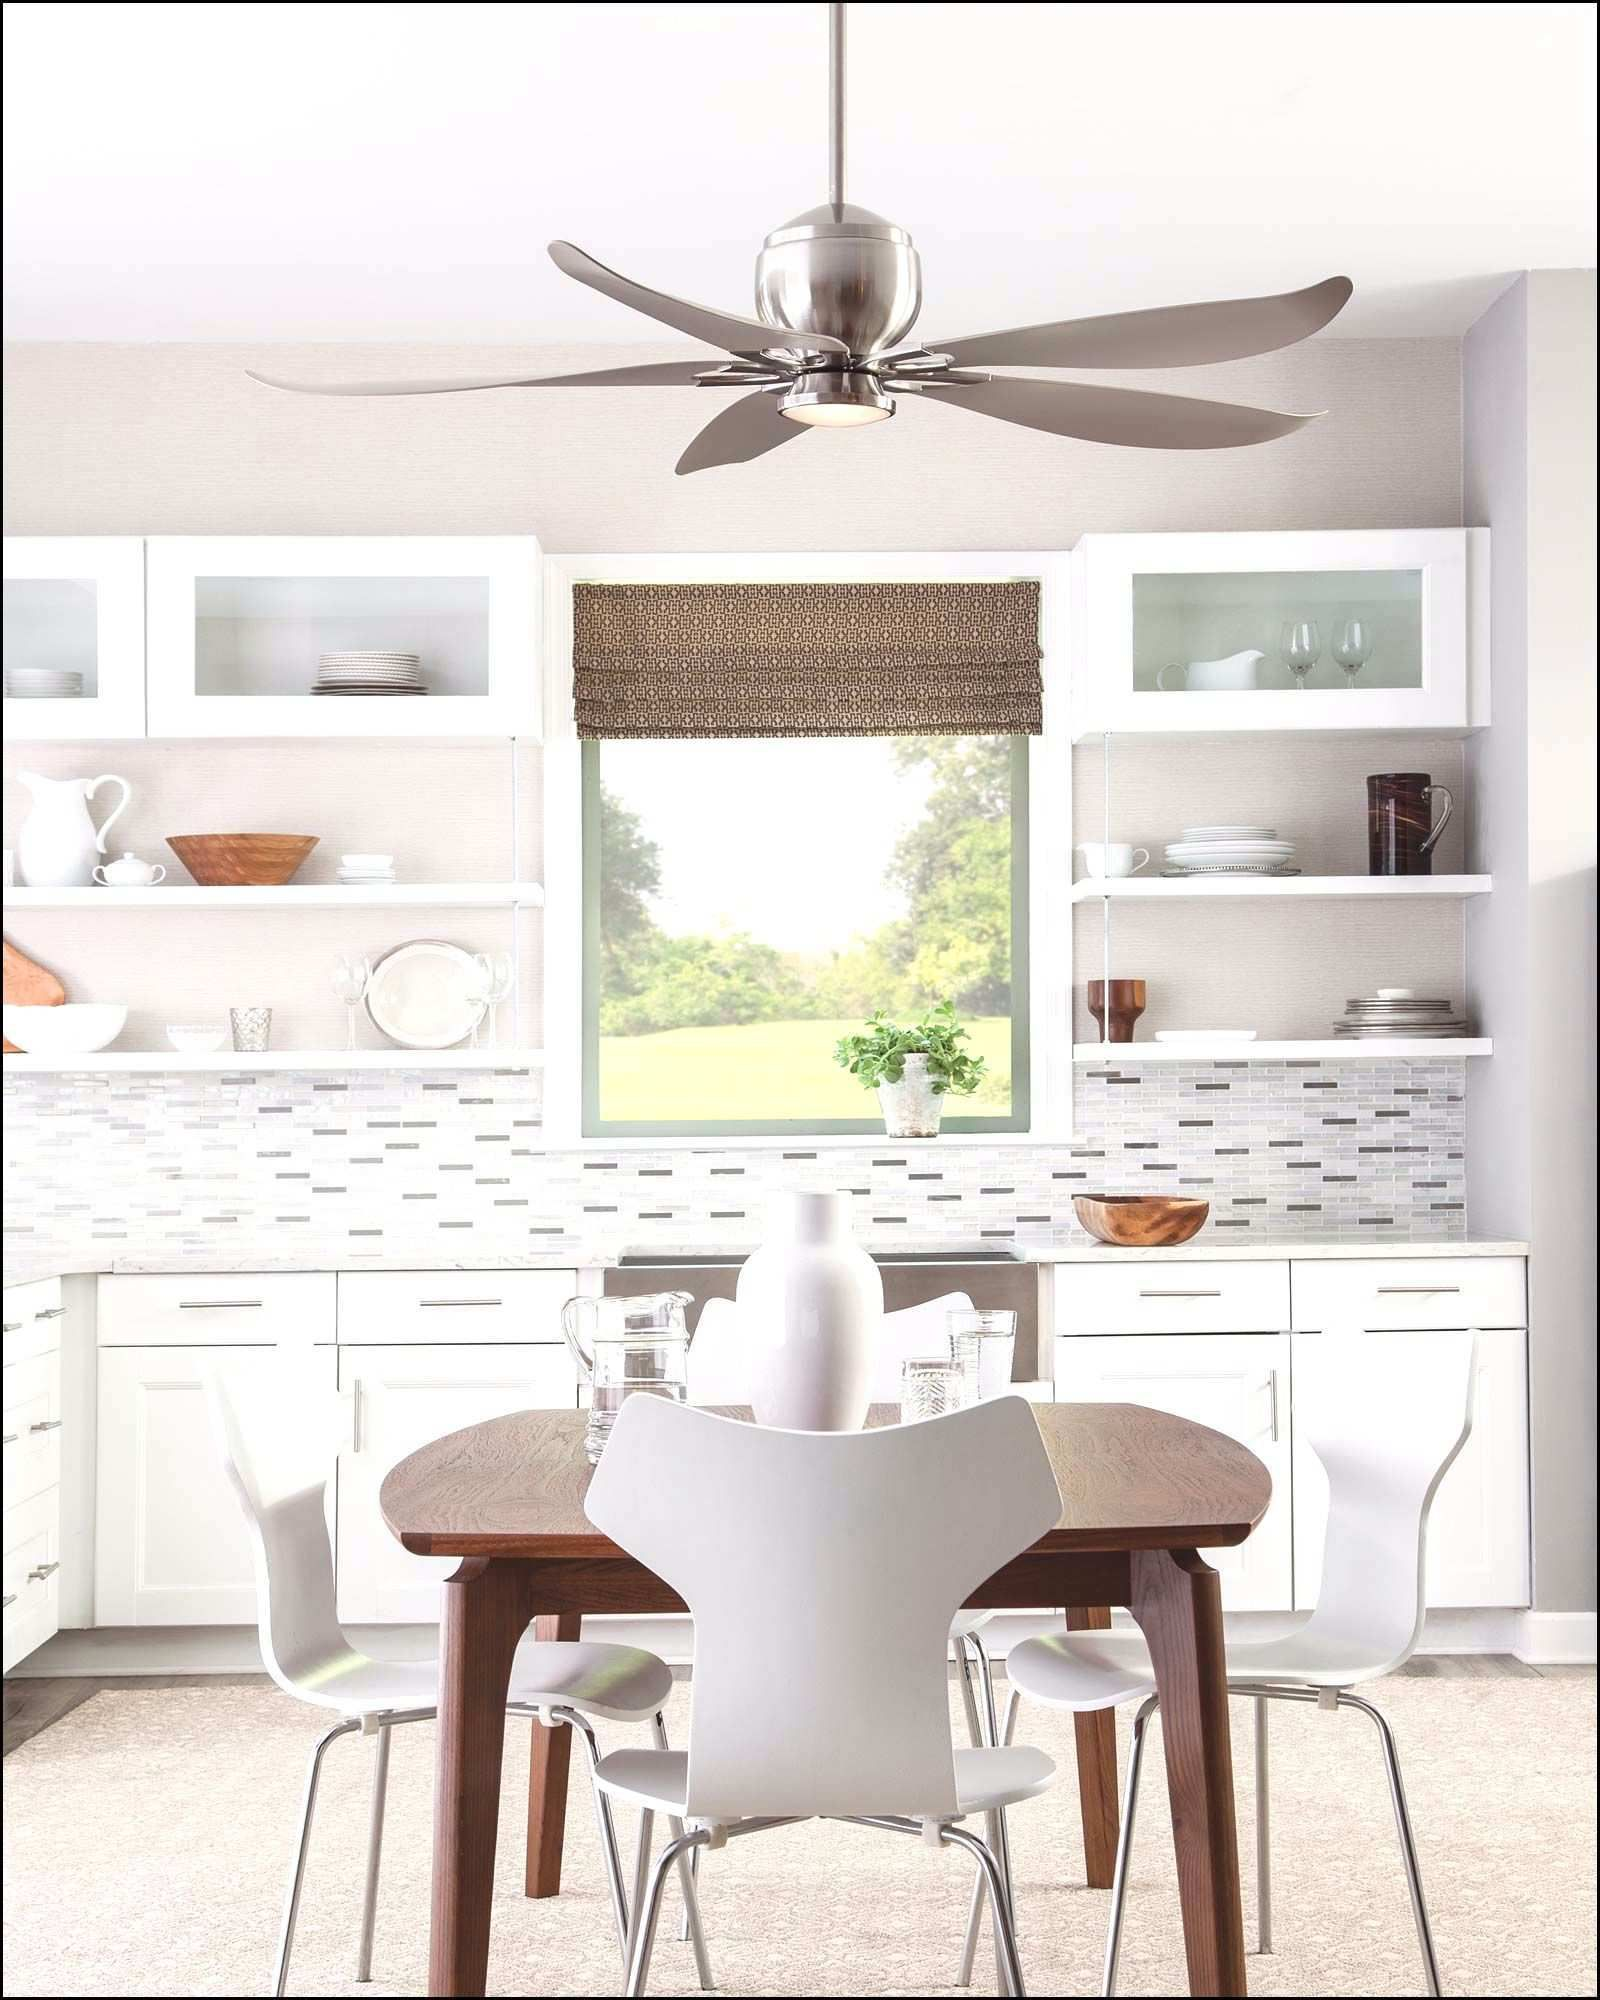 Kitchen Ceiling Fans Have Been Around For Decades And They Will Be Around For Much Longer Due To Their H Ceiling Fan In Kitchen Ceiling Fan Simple Ceiling Fan